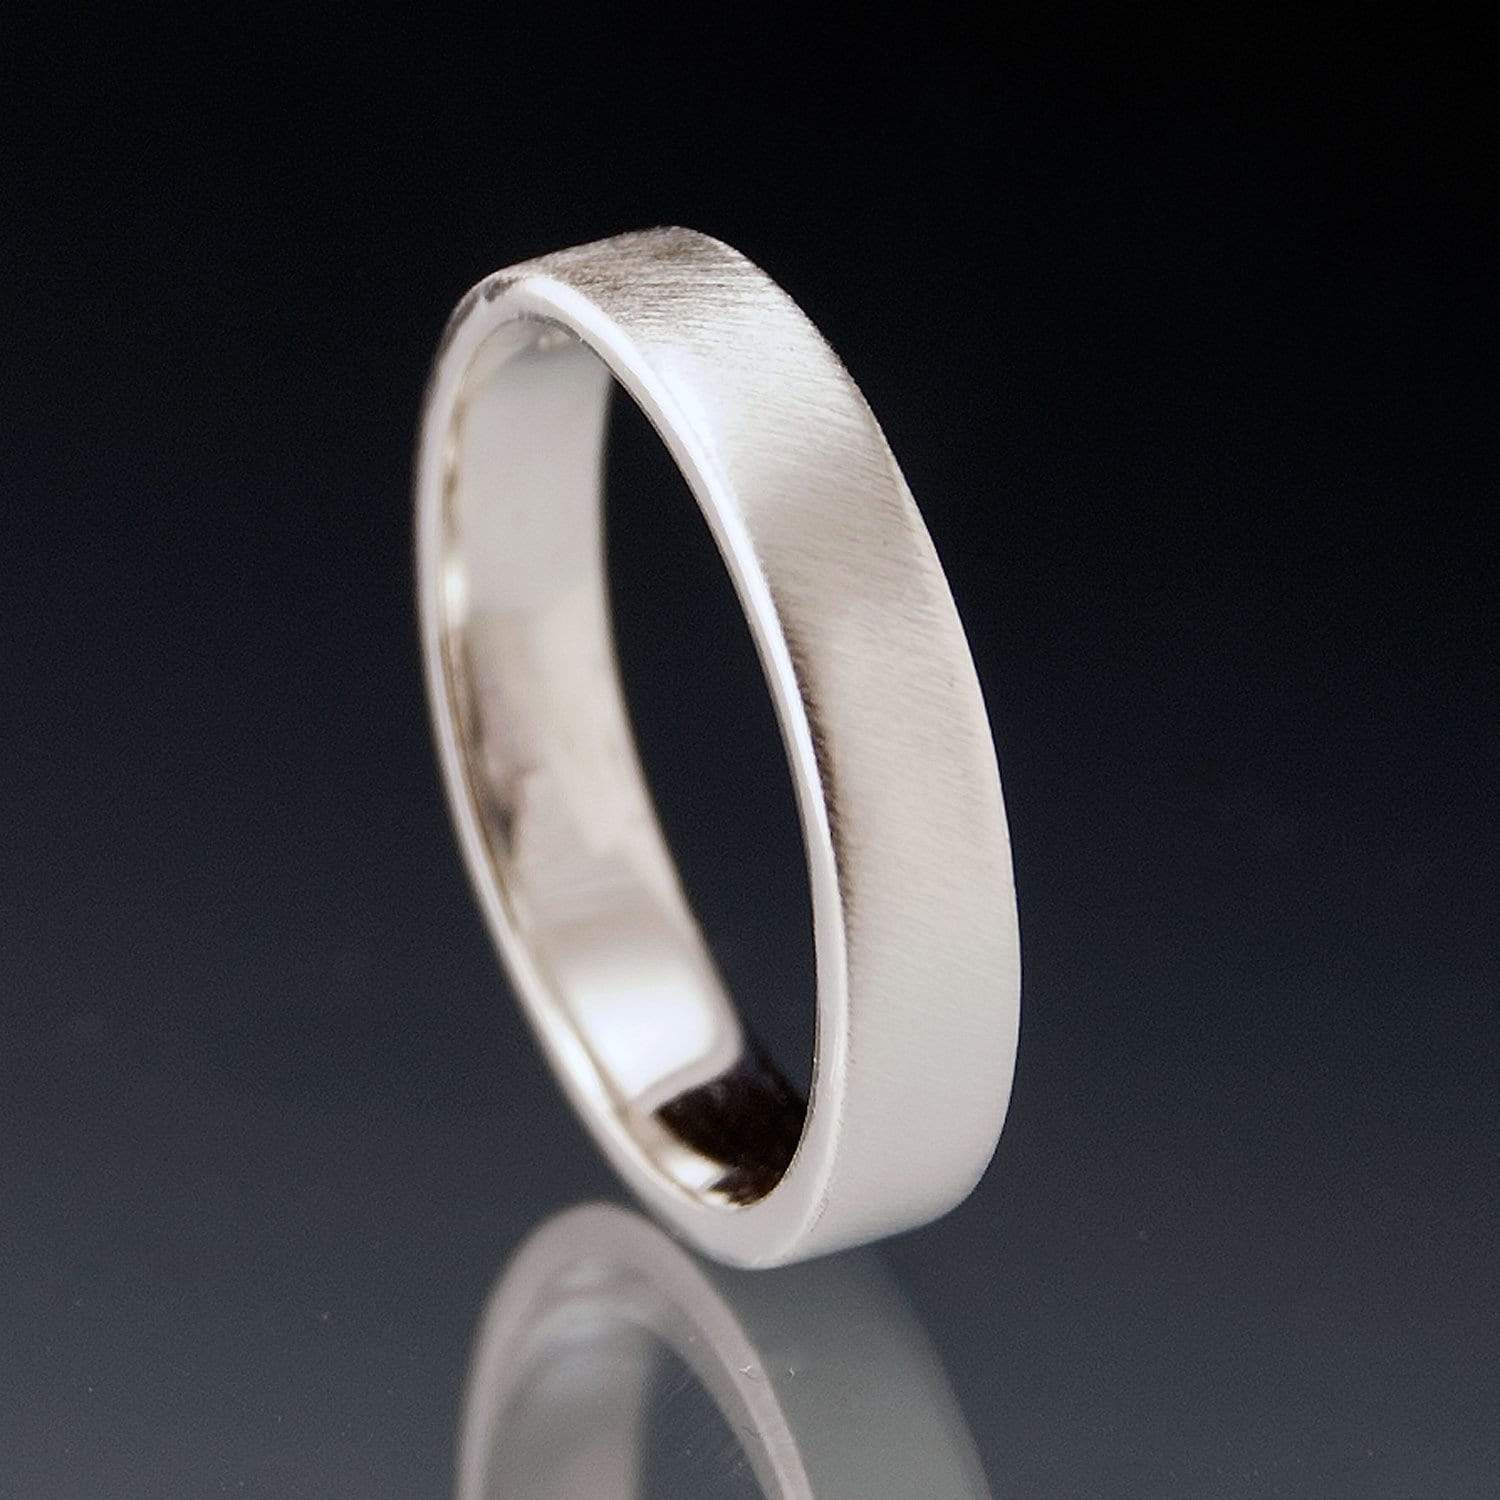 Narrow Flat Simple Wedding Band, 2-4mm Width - by Nodeform